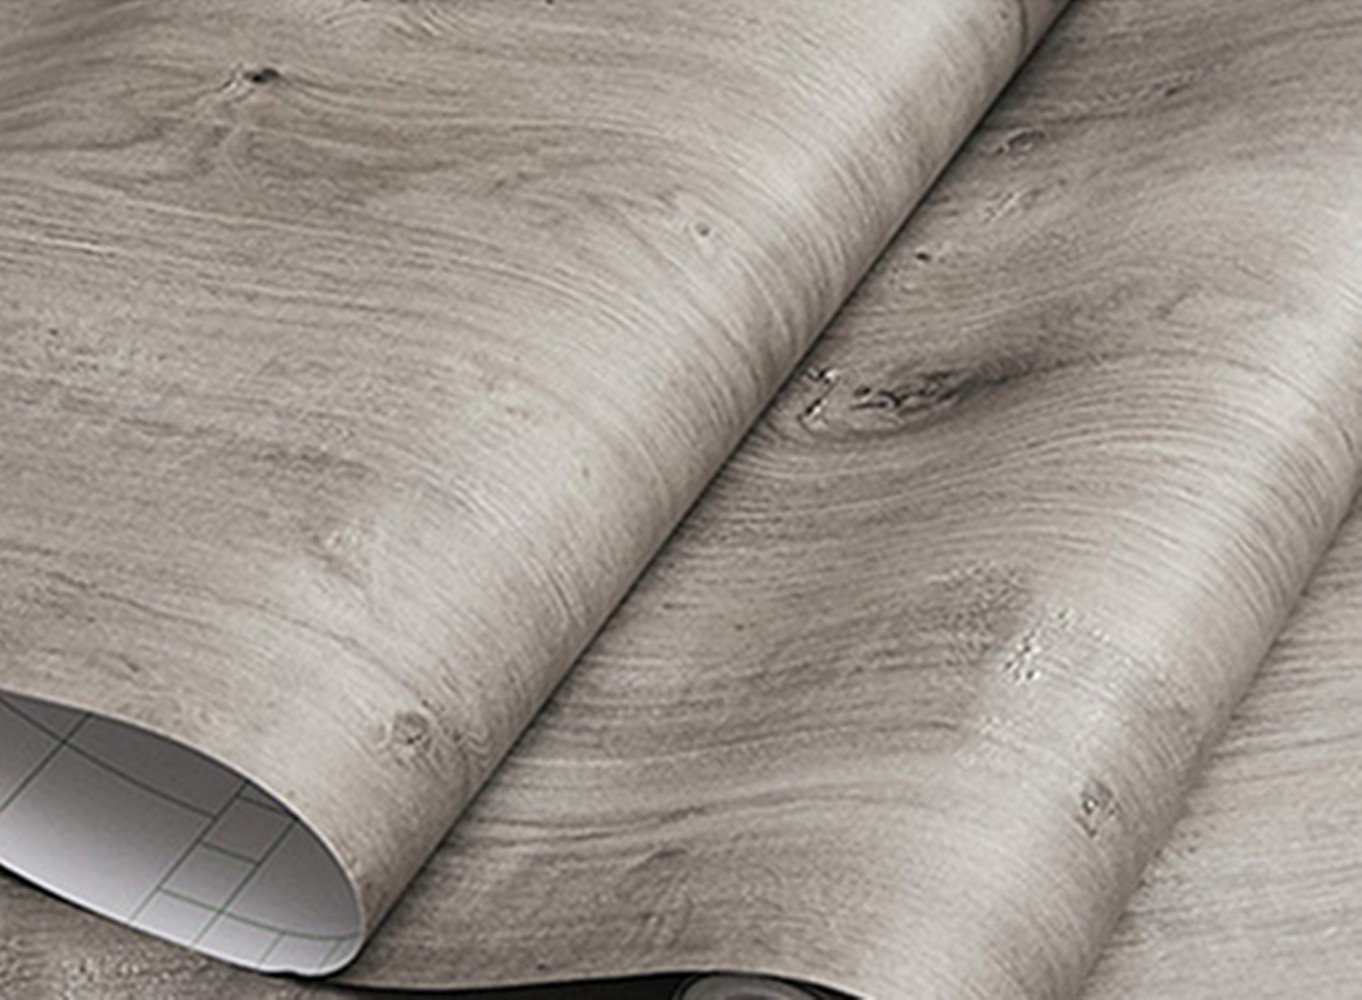 BESTERY Gray Wood Grain Furniture Stickers PVC Wallpaper Cabinets Wardrobe Contact Paper, Self-Adhesive Removable 15.8inch by 79inch (Grey)